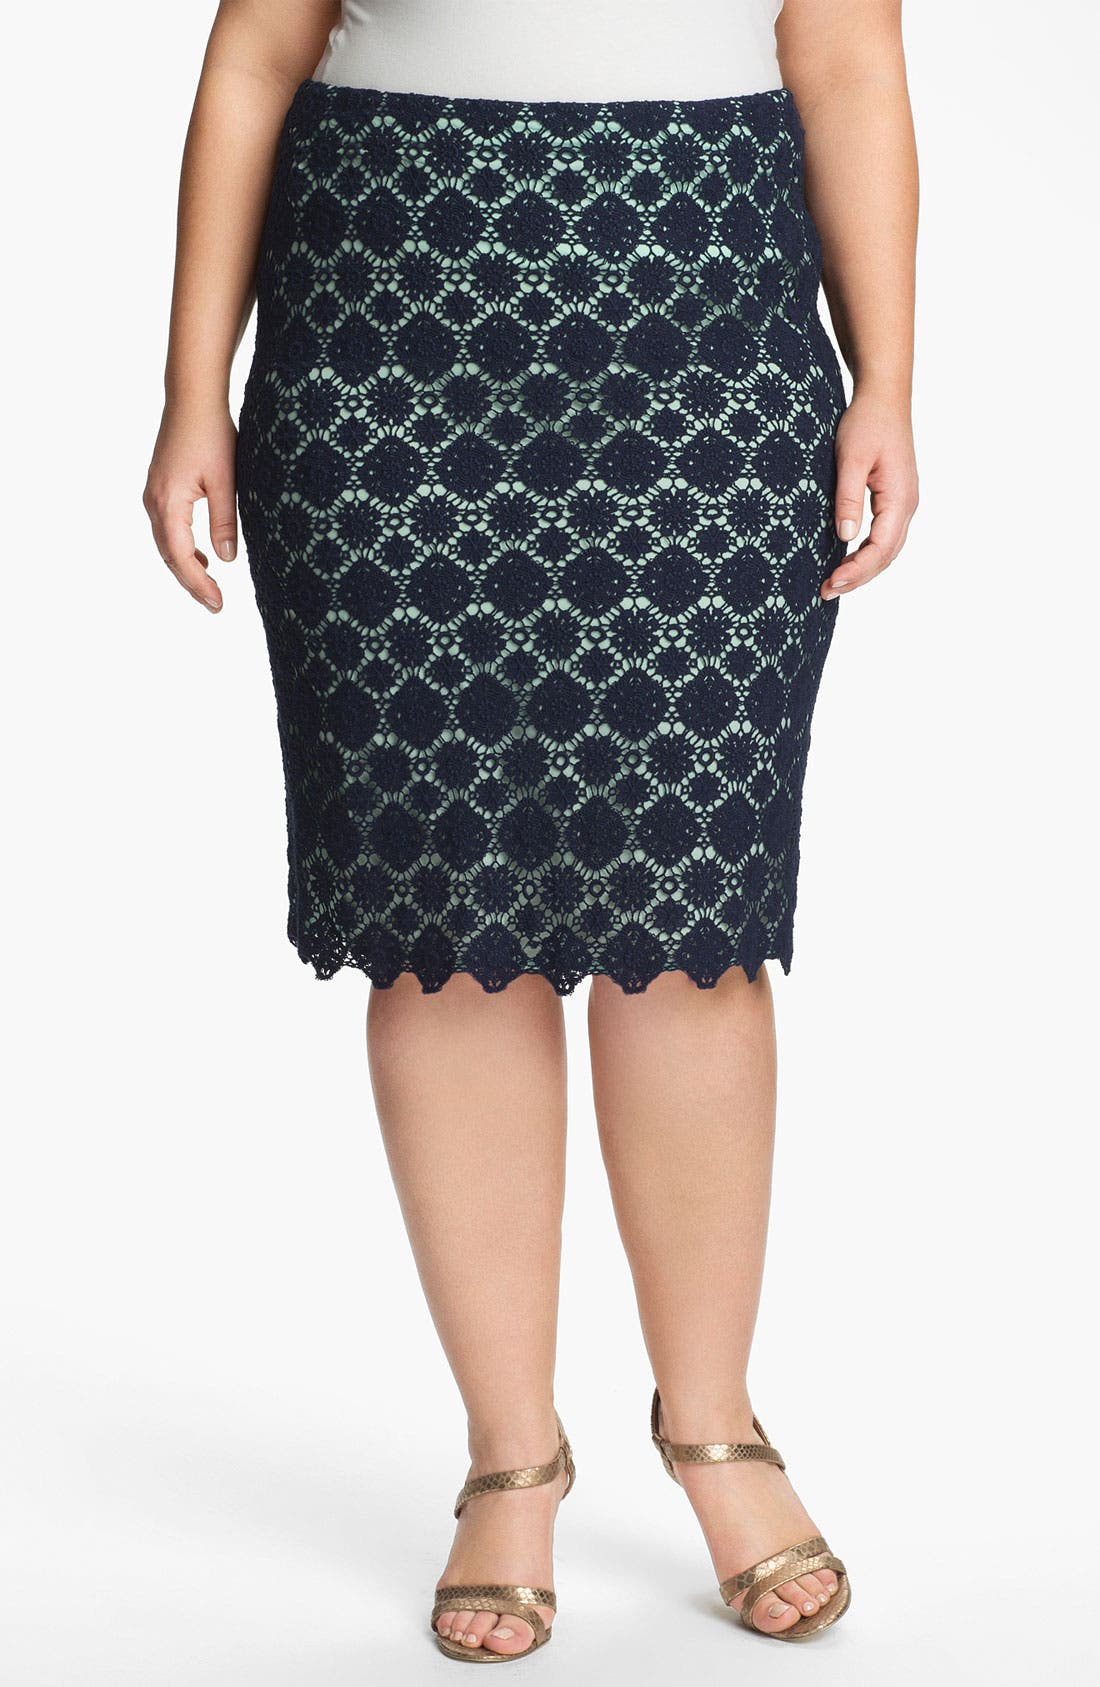 Alternate Image 1 Selected - Vince Camuto Lace Pencil Skirt (Plus)